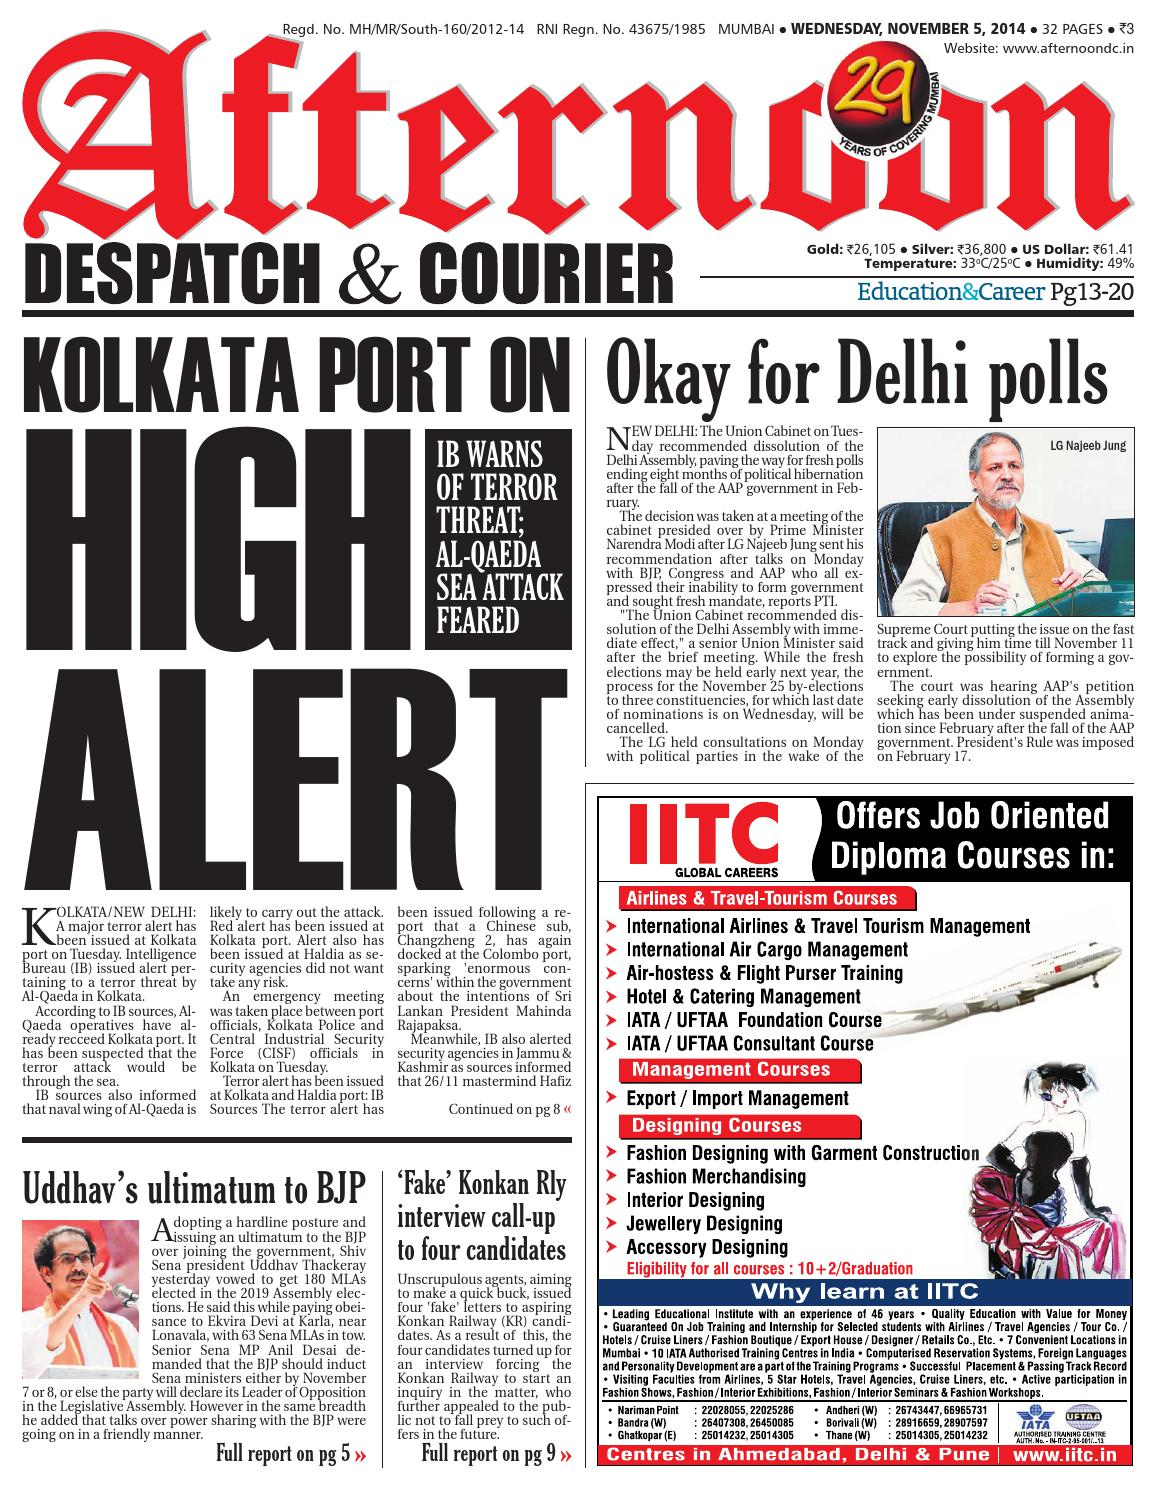 05 nov 2014 by Afternoon Despatch & Courier - issuu